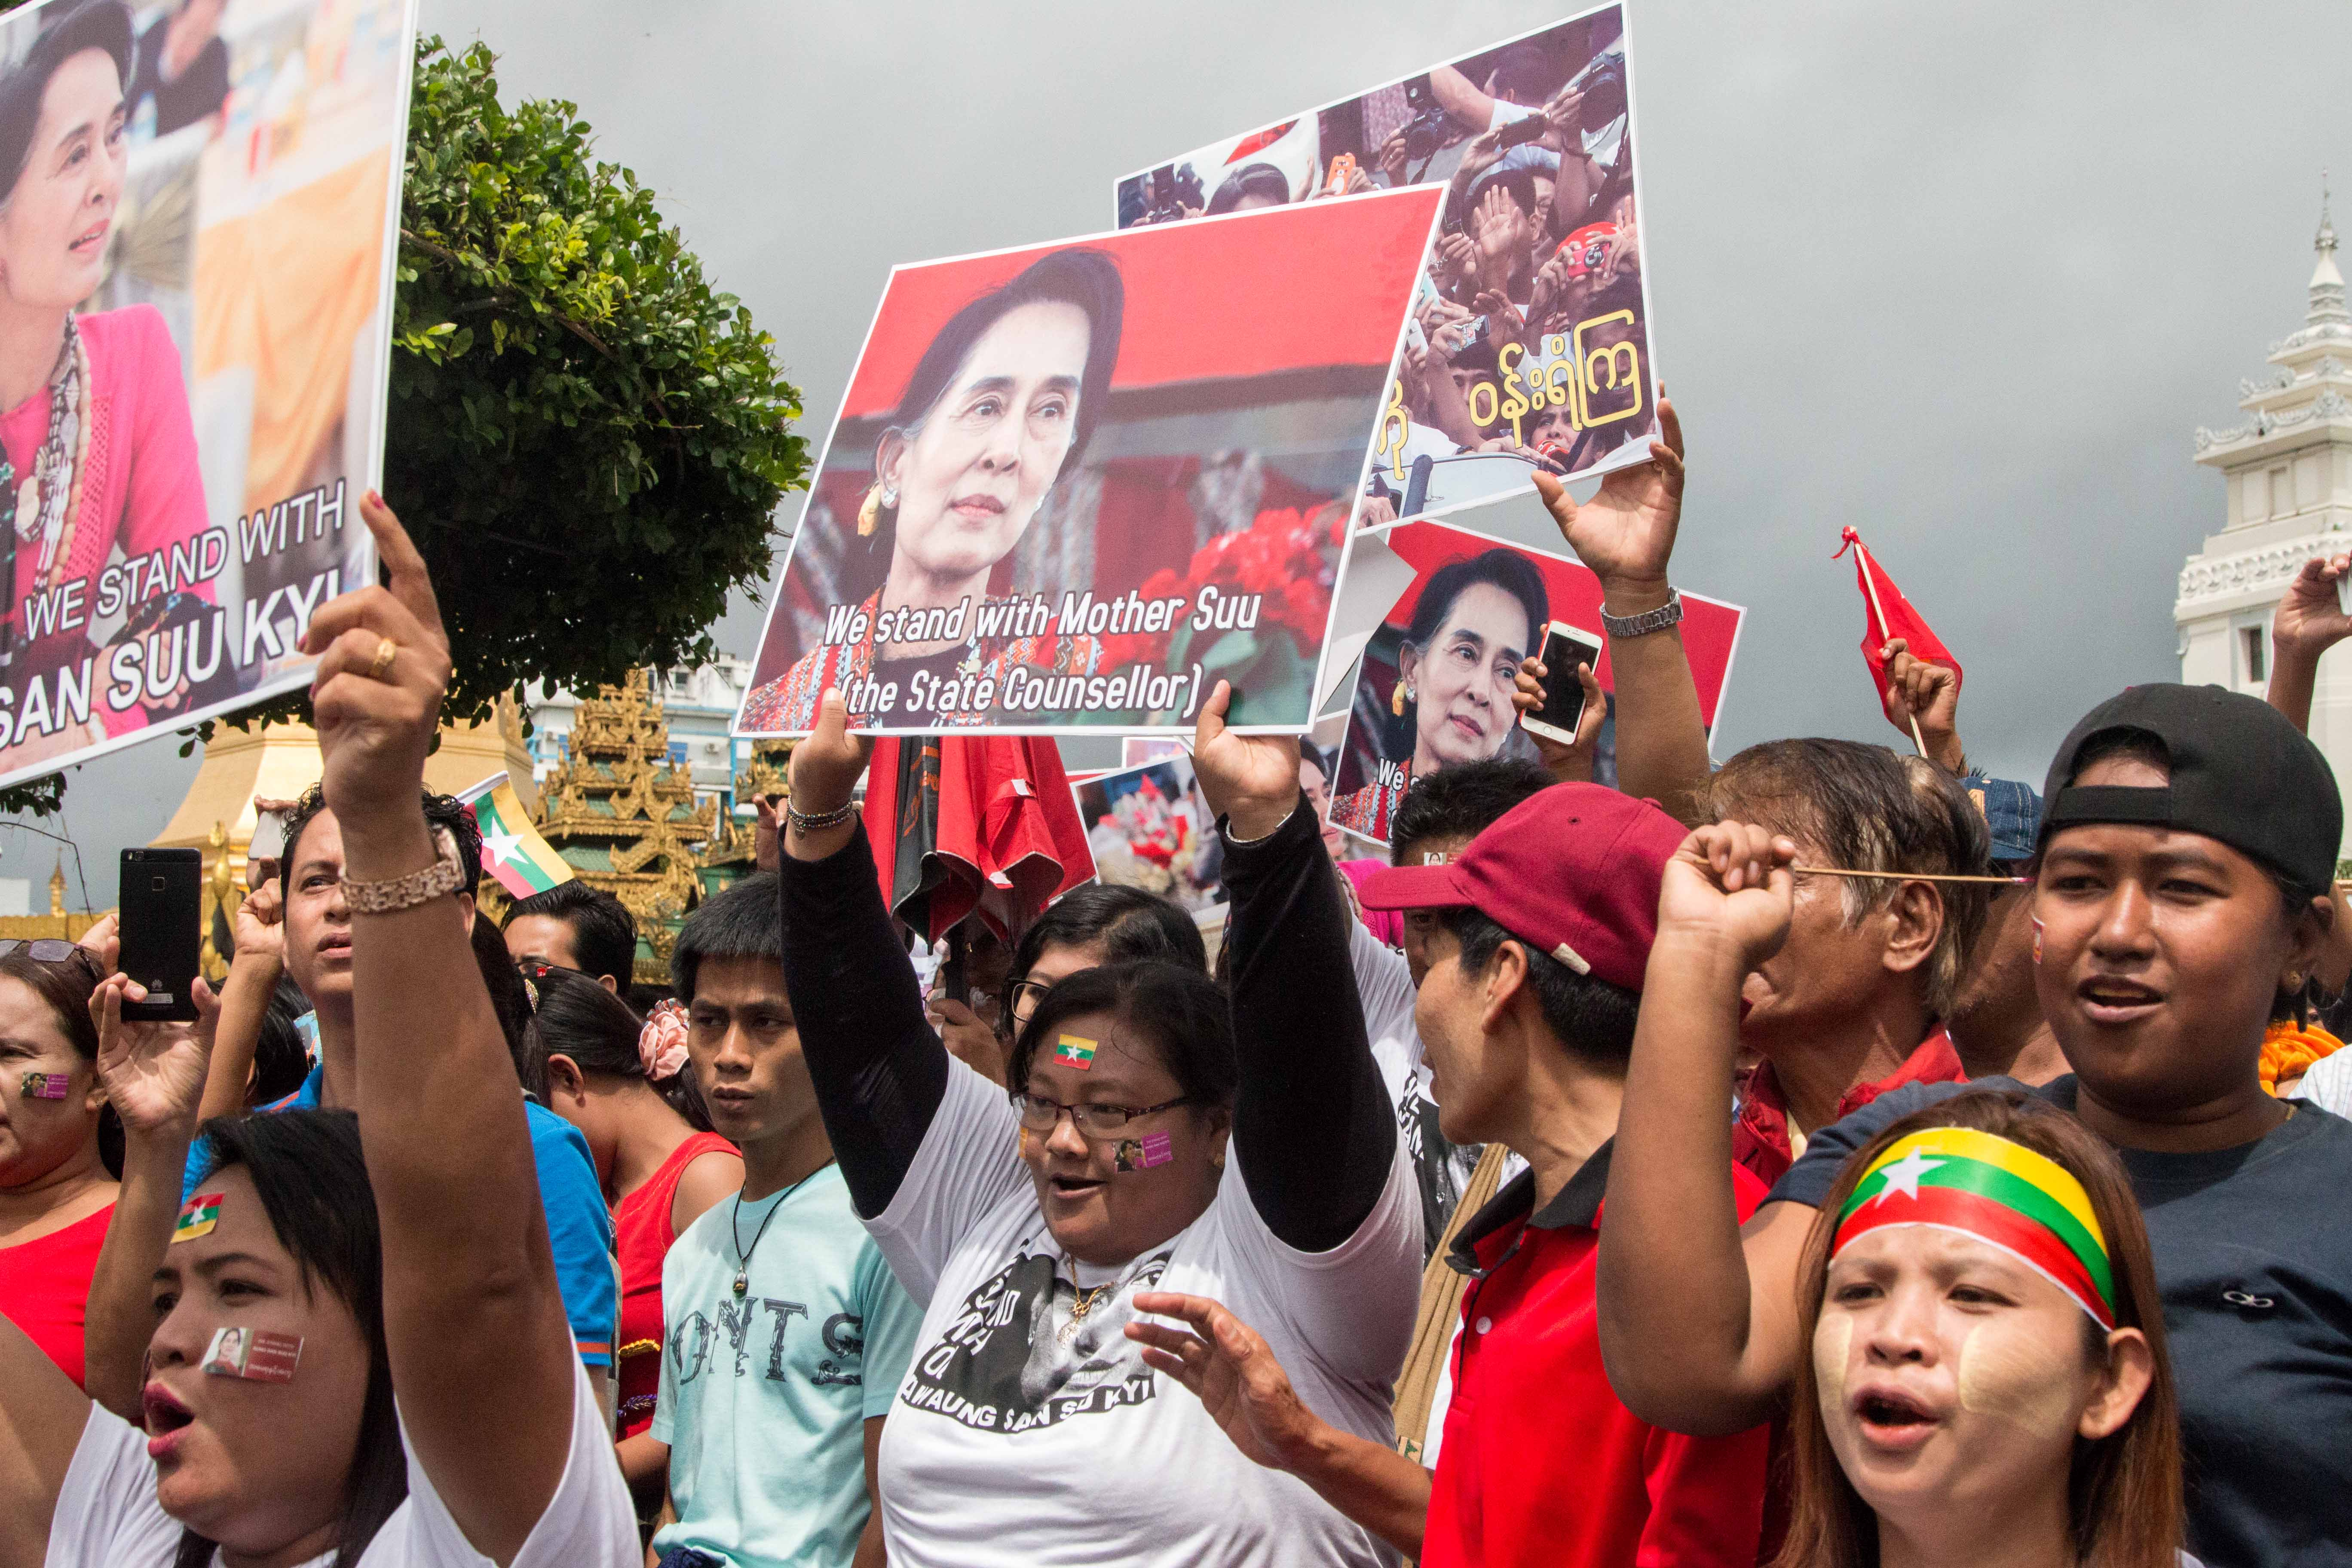 People hold signs supporting Aung San Suu Kyi